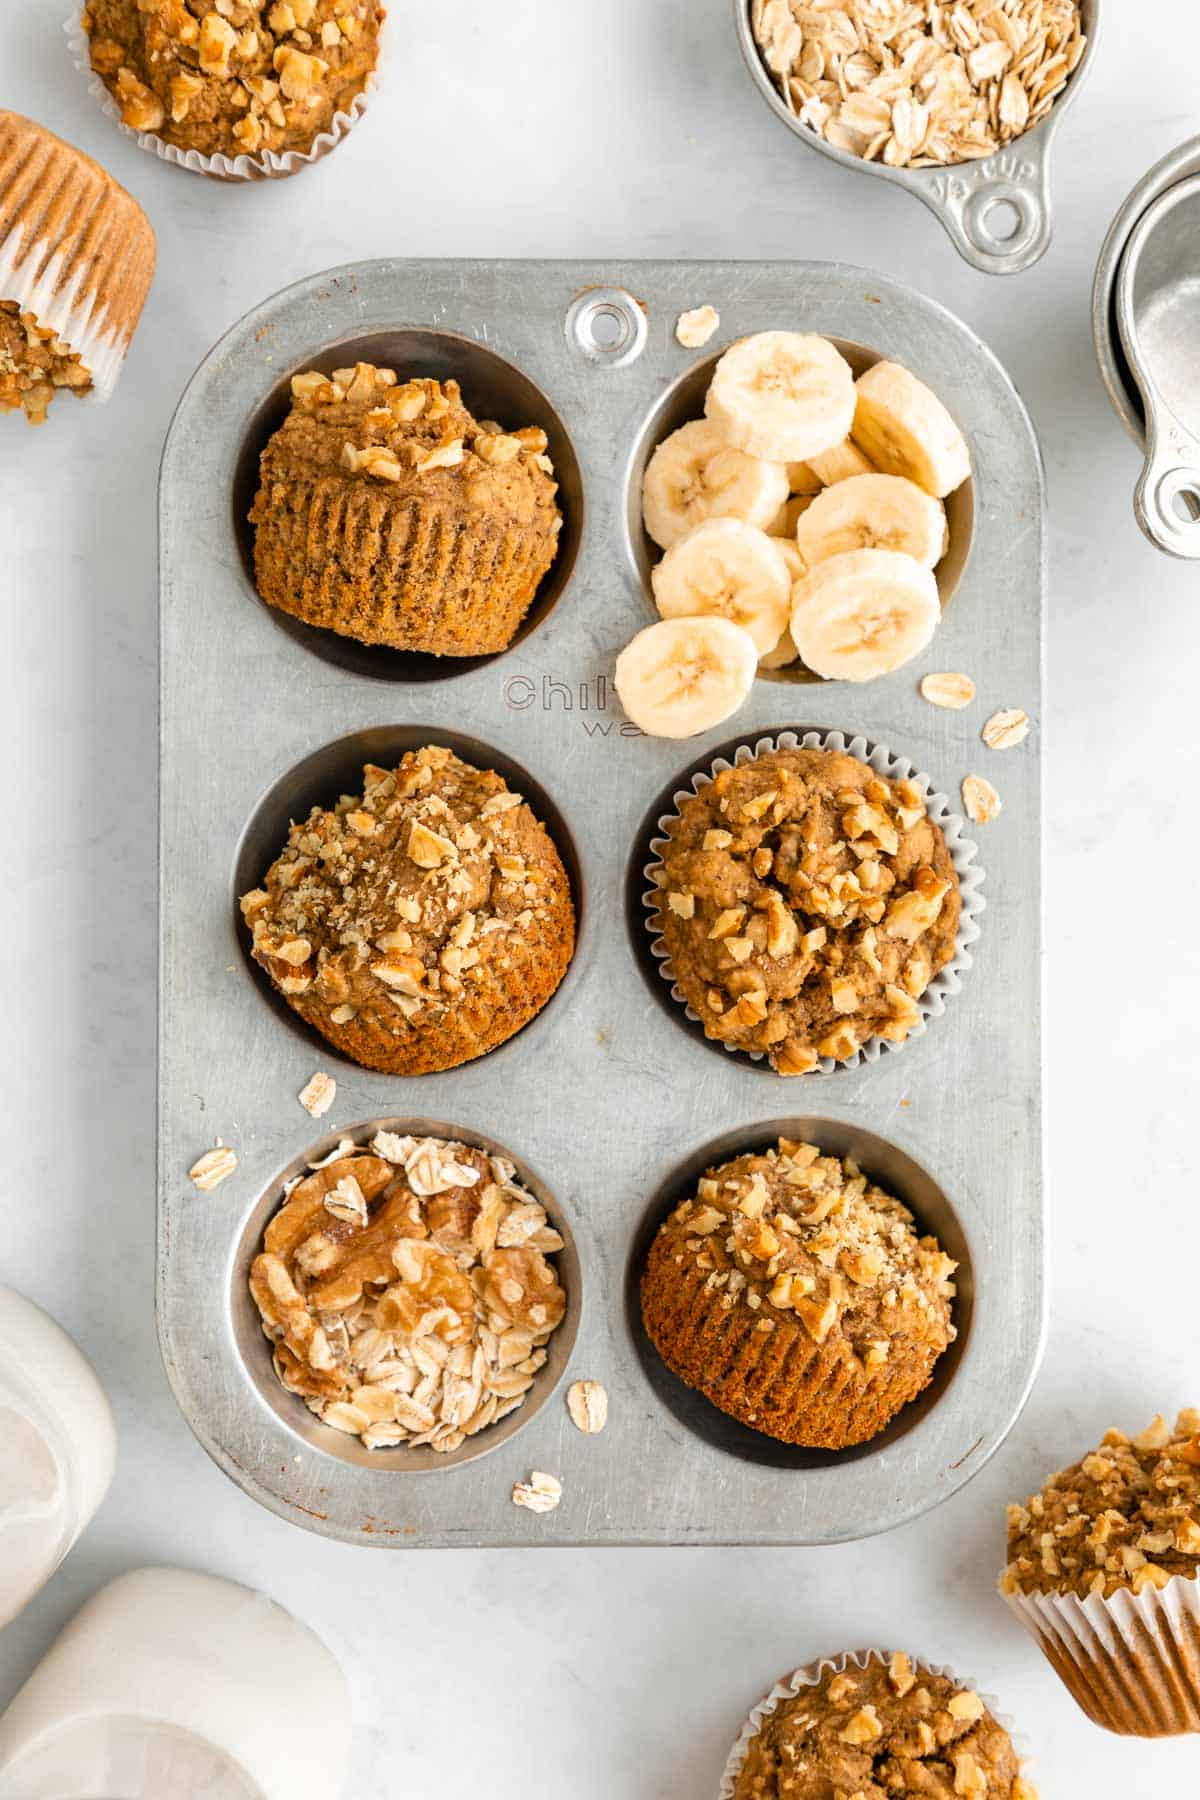 healthy banana nut muffins in a vintage muffin tin with walnuts, oats, and sliced banana